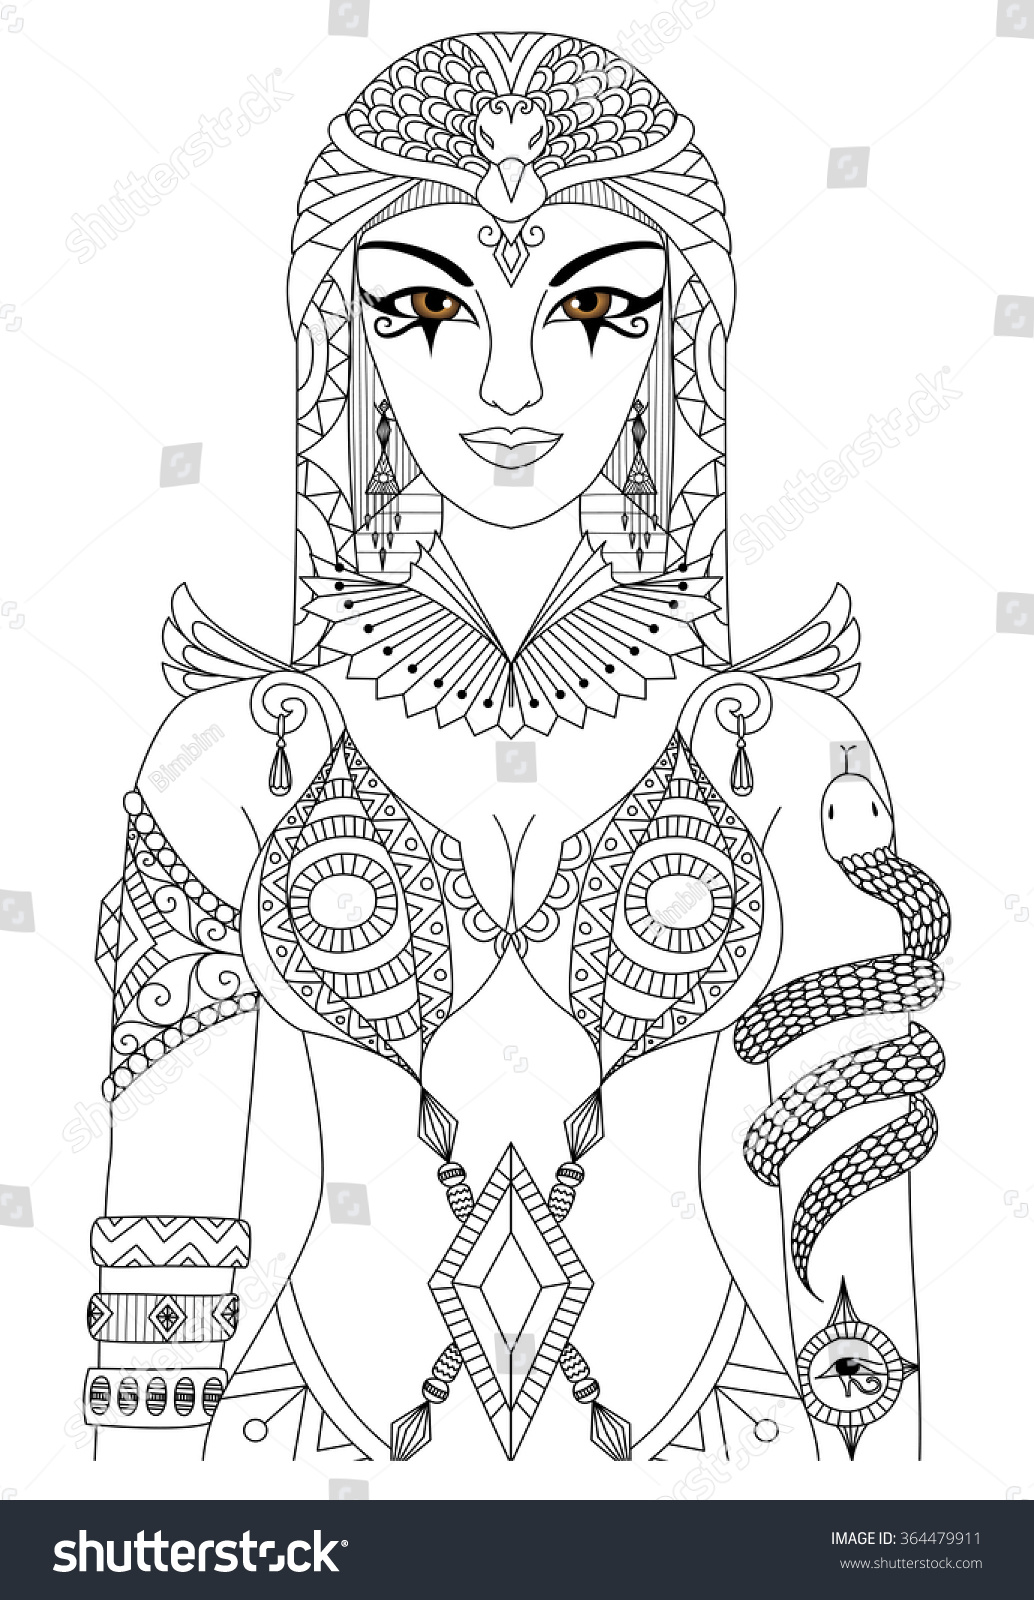 egyptian women coloring pages - photo#14